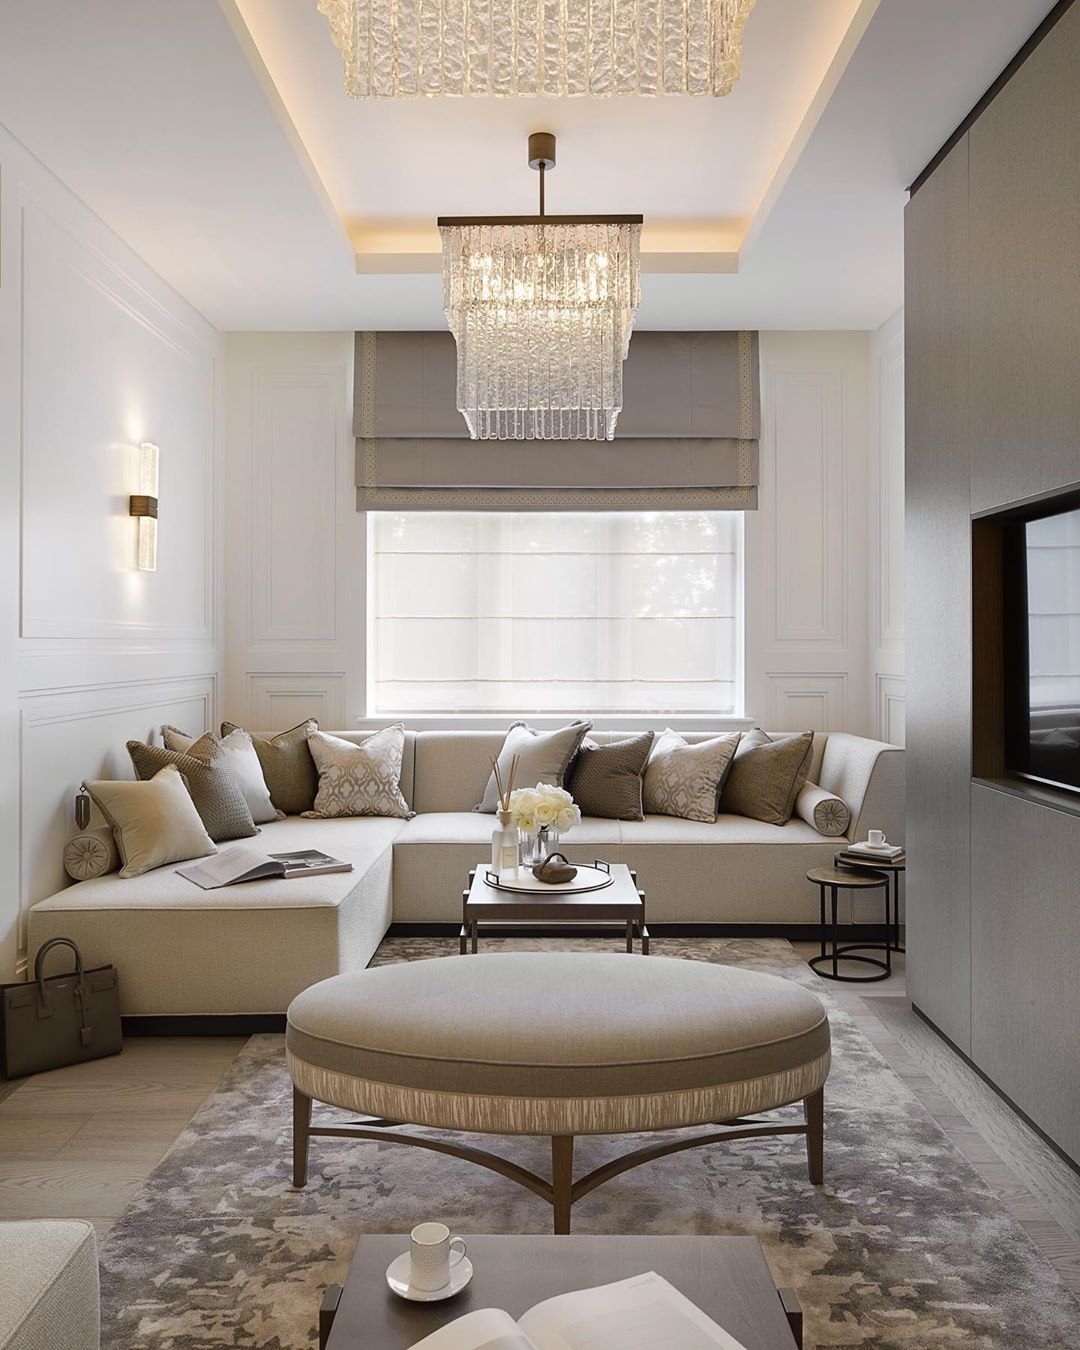 Sophie Paterson On Instagram The Compact Majlis Sitting Room At Our Hyde Park Project We Luxury Furniture Living Room Sophie Paterson Interiors Home Decor